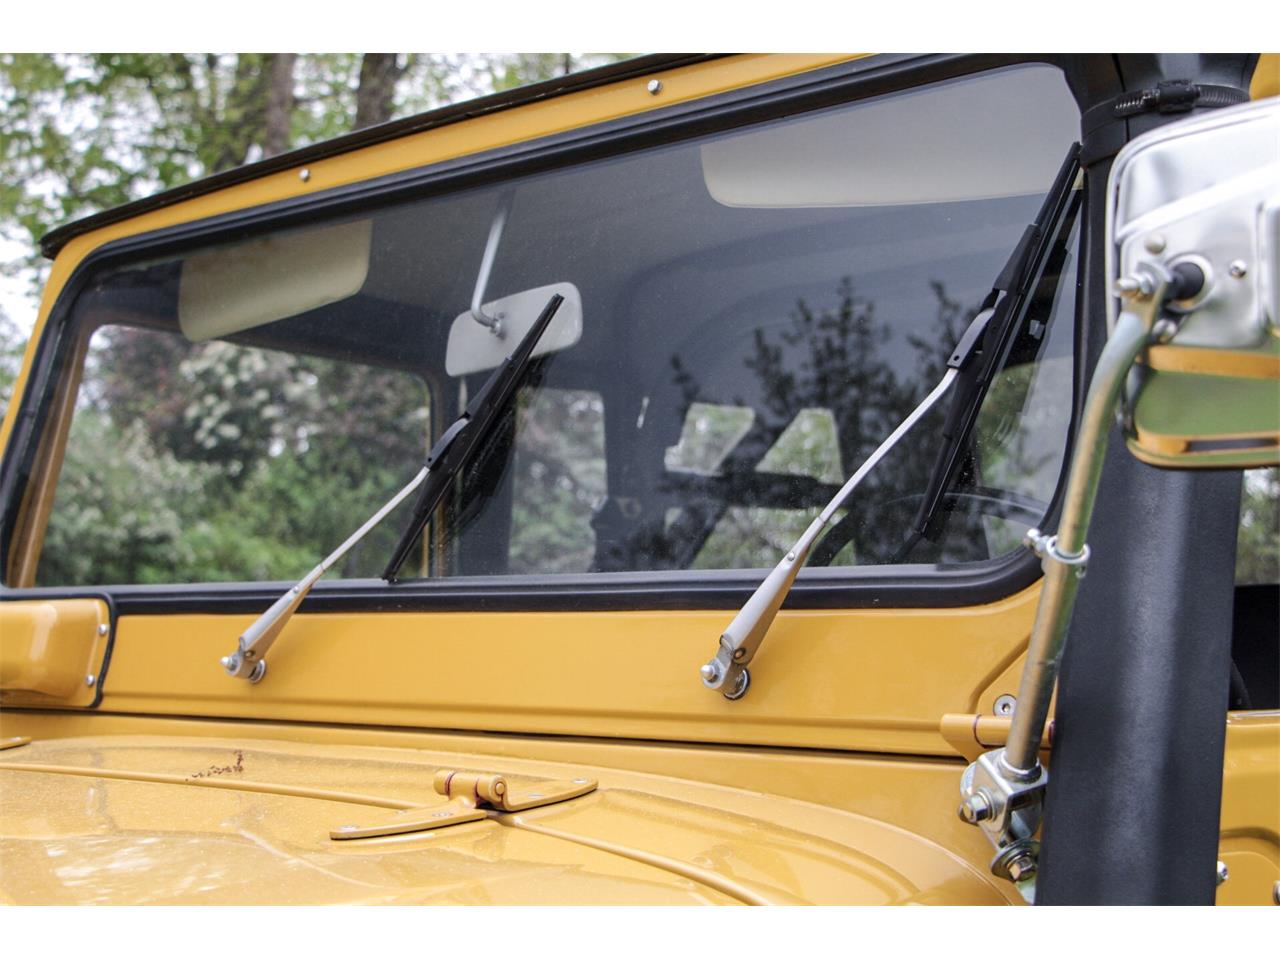 Large Picture of 1977 Land Cruiser FJ40 located in Georgia - $55,000.00 Offered by Classic AutoSmith - PW6P